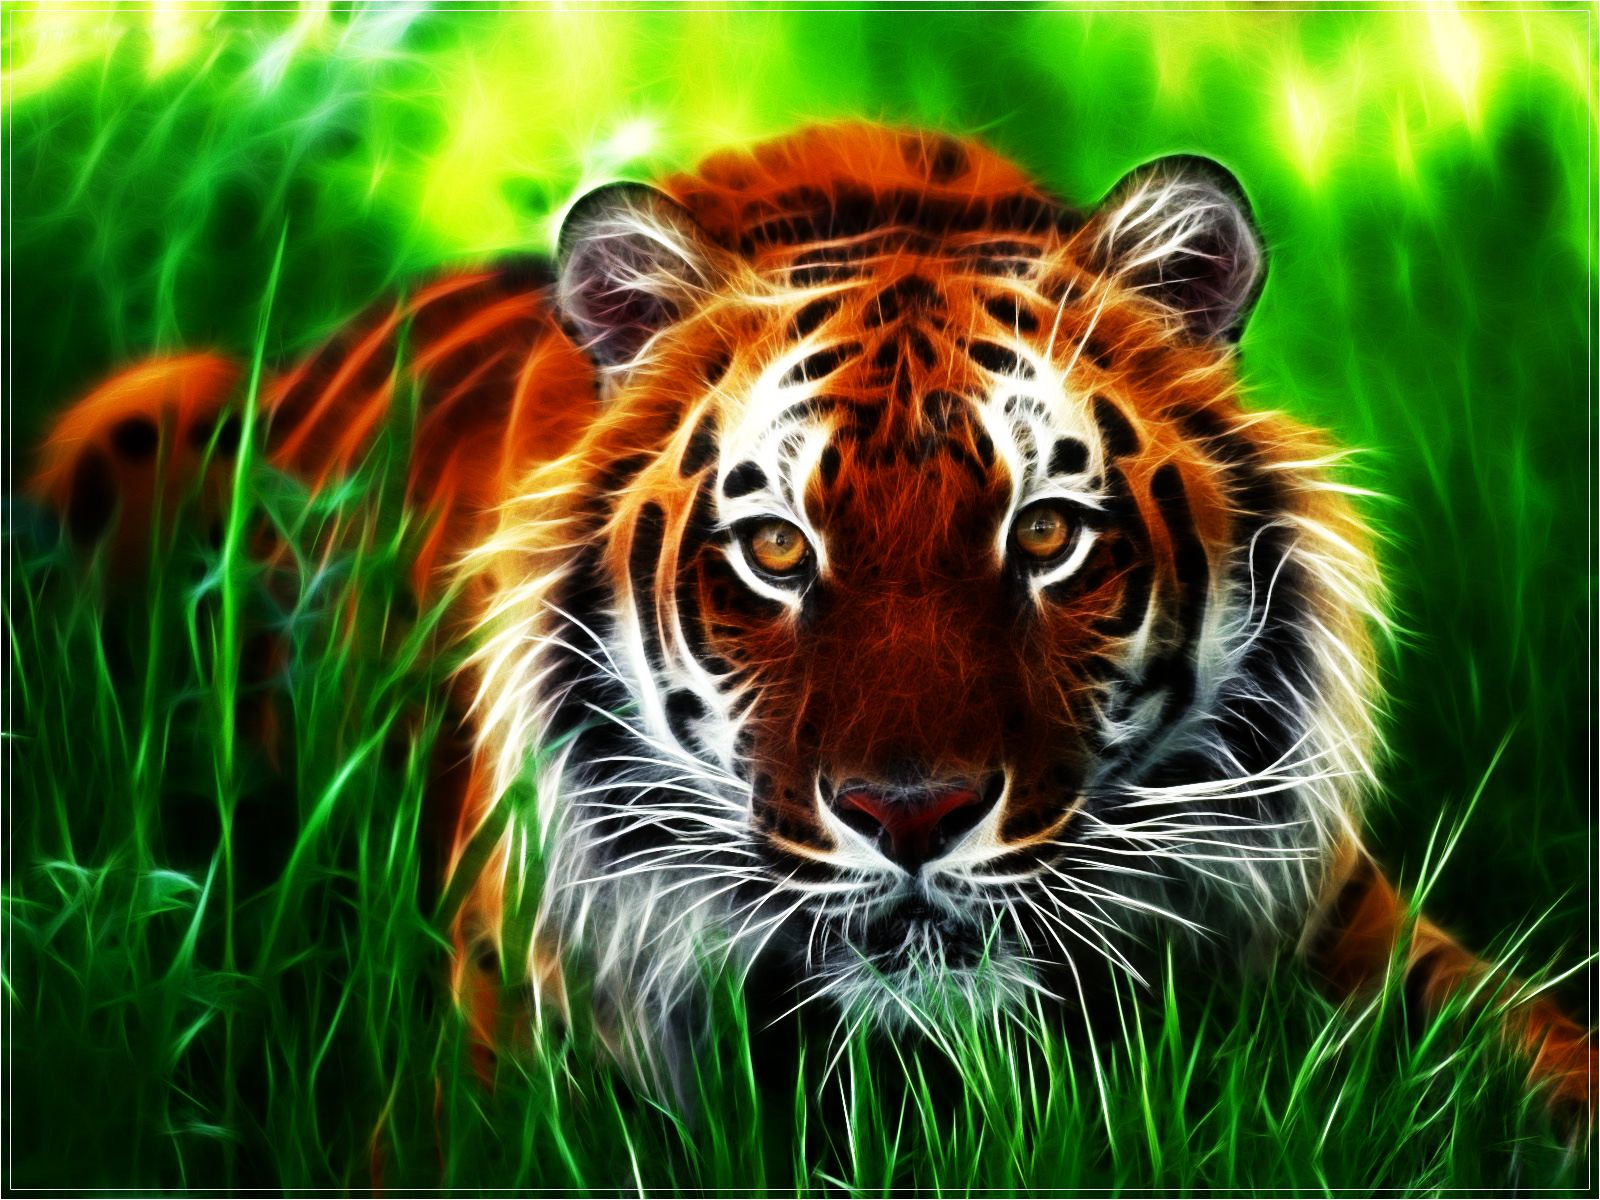 Wallpaper for computer description tiger wallpaper is wallapers wallpaper for computer description tiger wallpaper is wallapers for pc desktoplaptop or altavistaventures